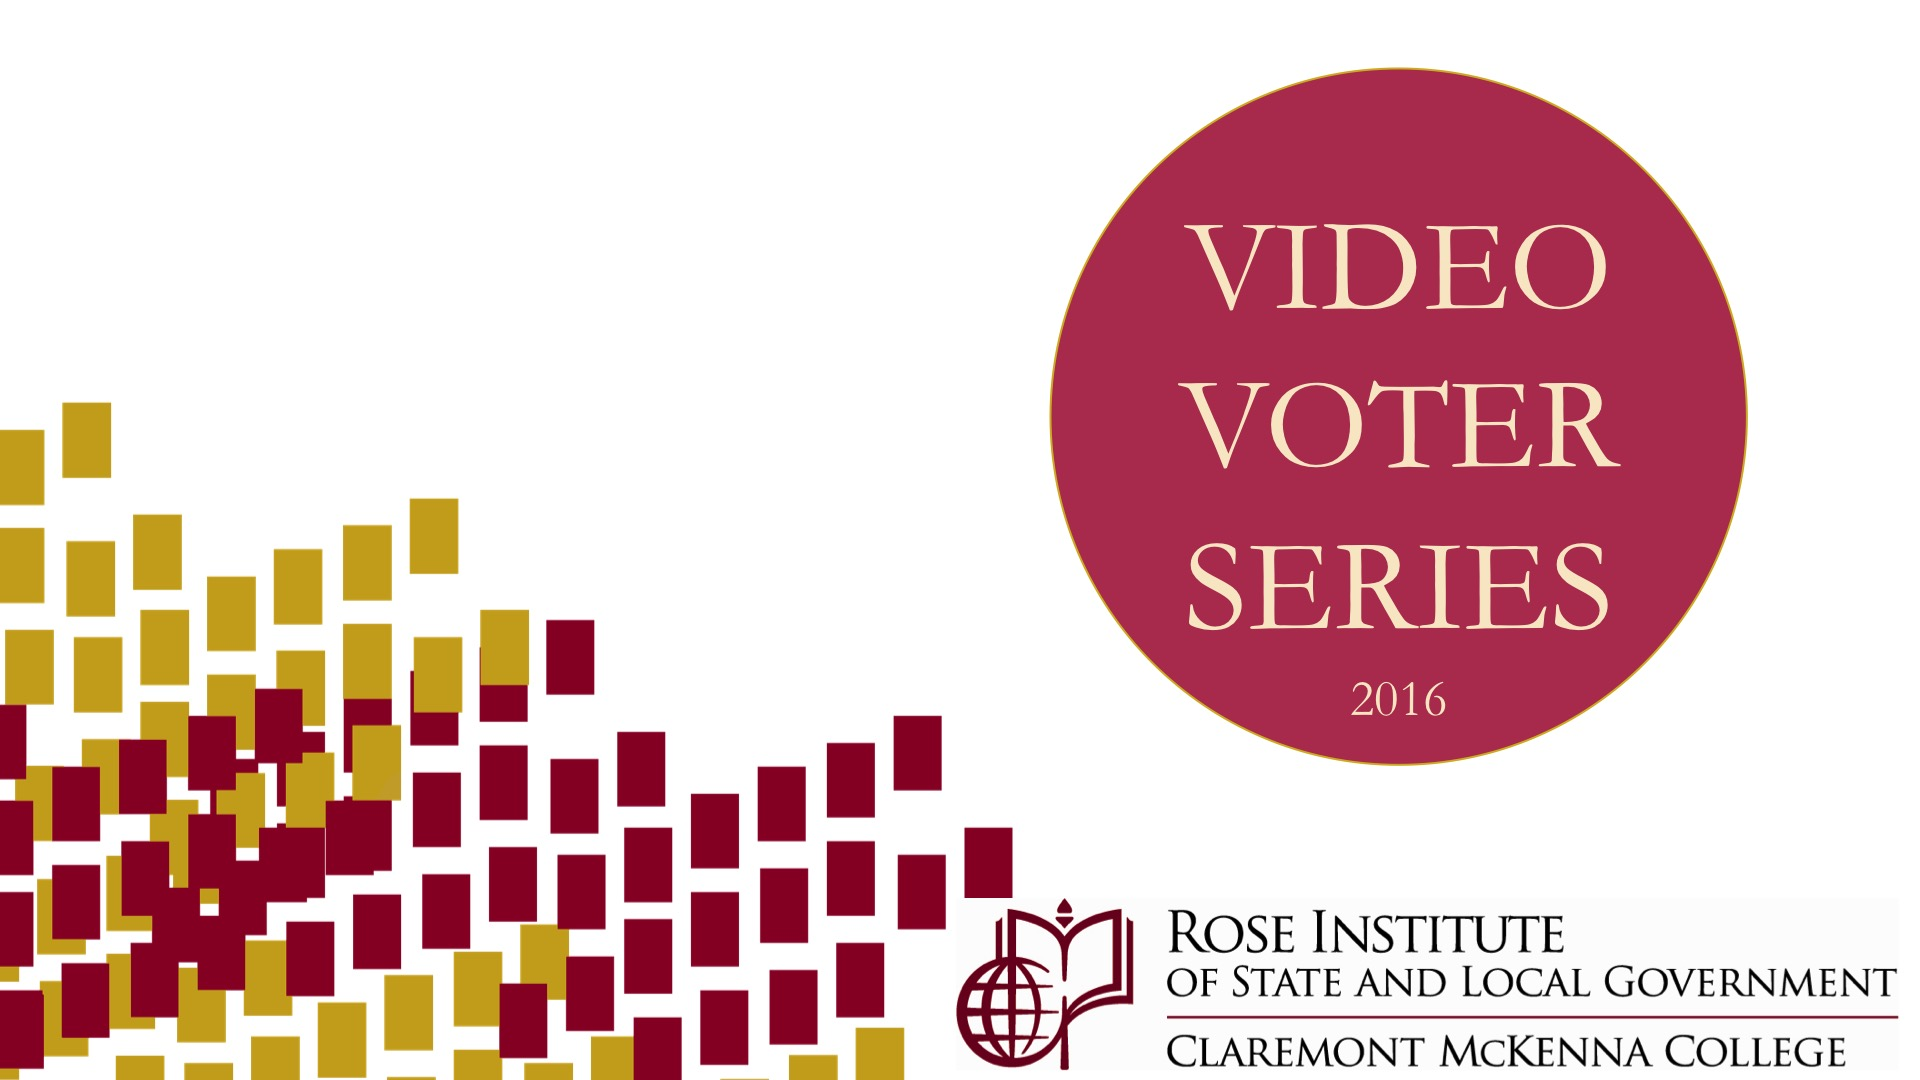 Video Voter Series splash screen